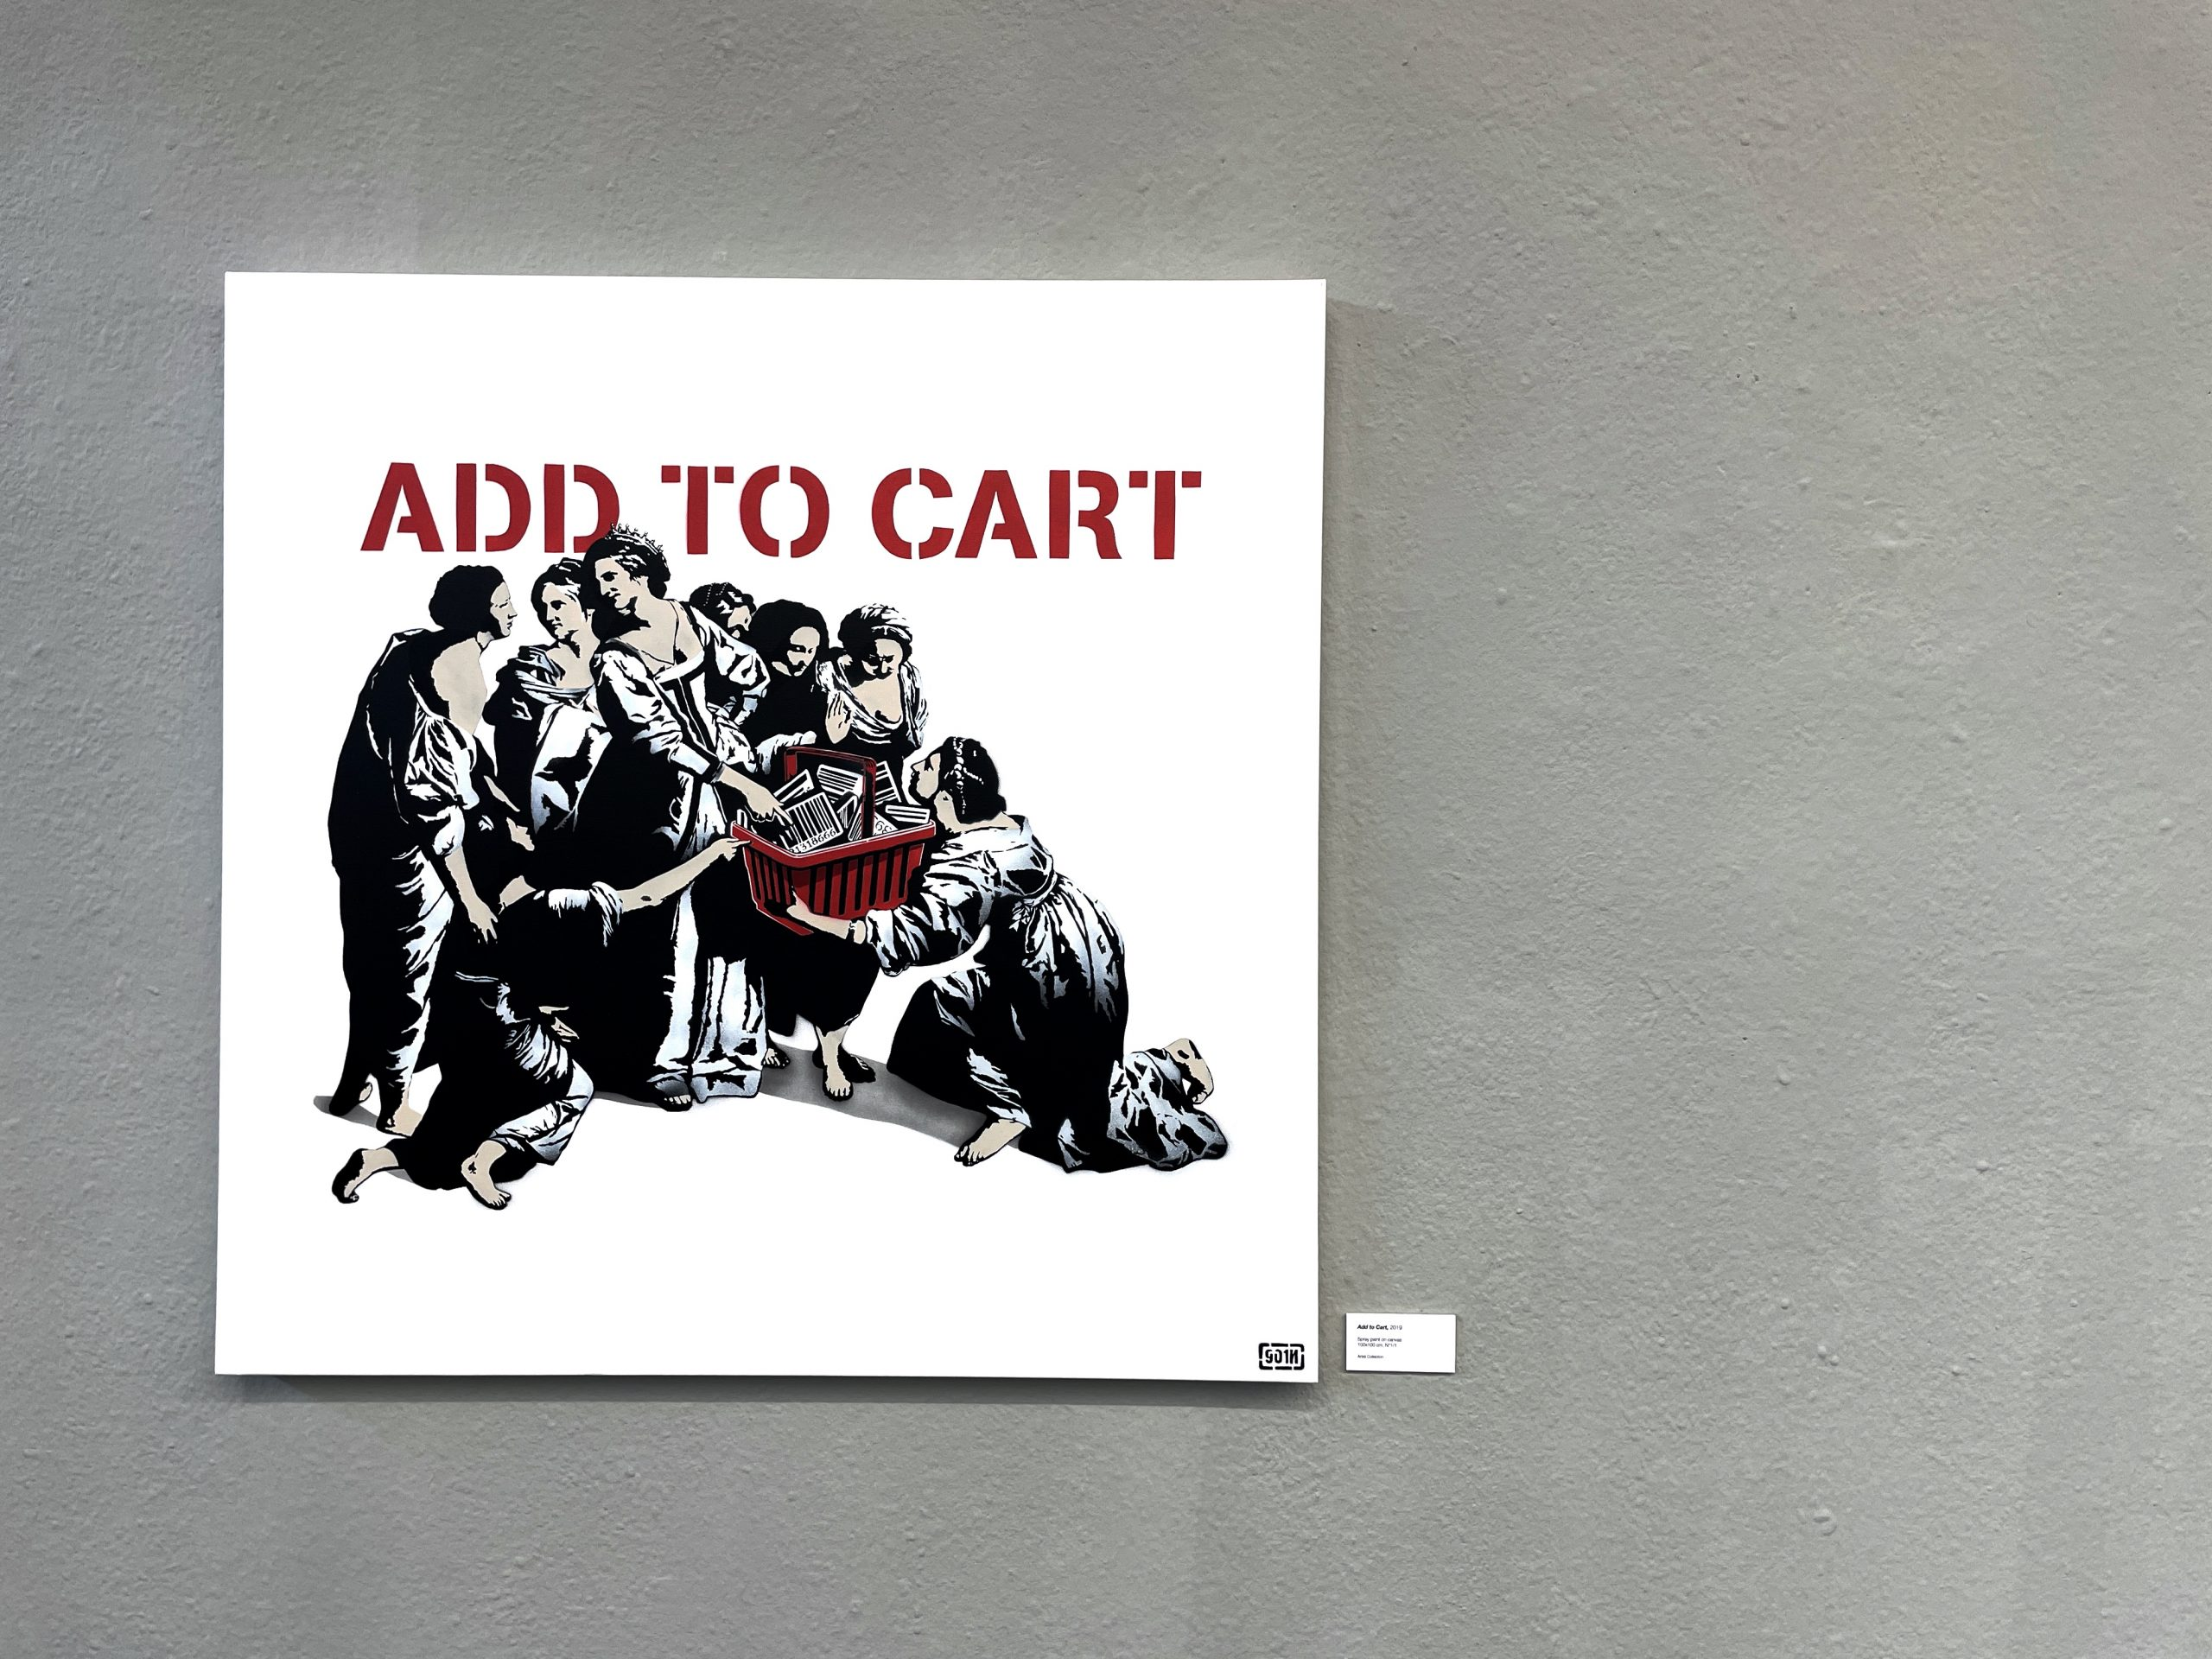 ADD TO CART (2019)